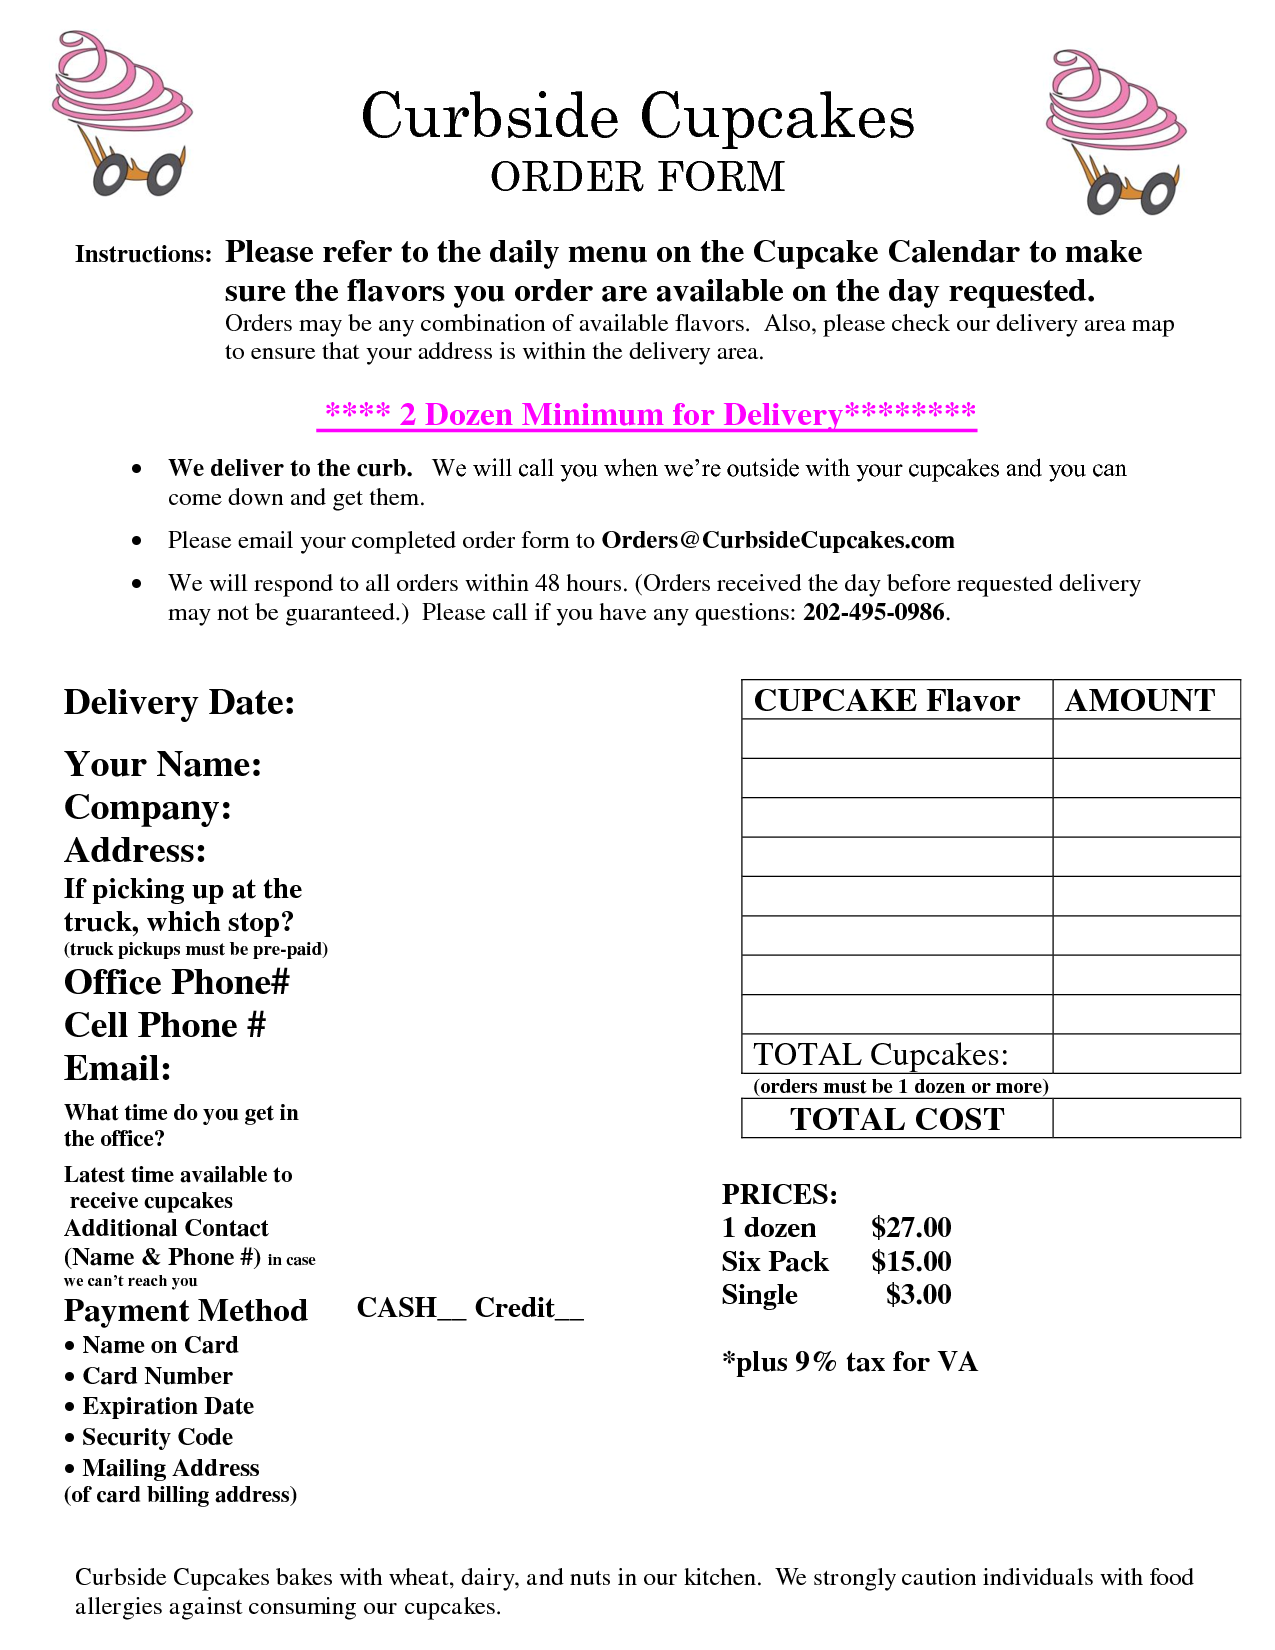 Order Form  AprilS Sweet Shoppe    Order Form And Cake